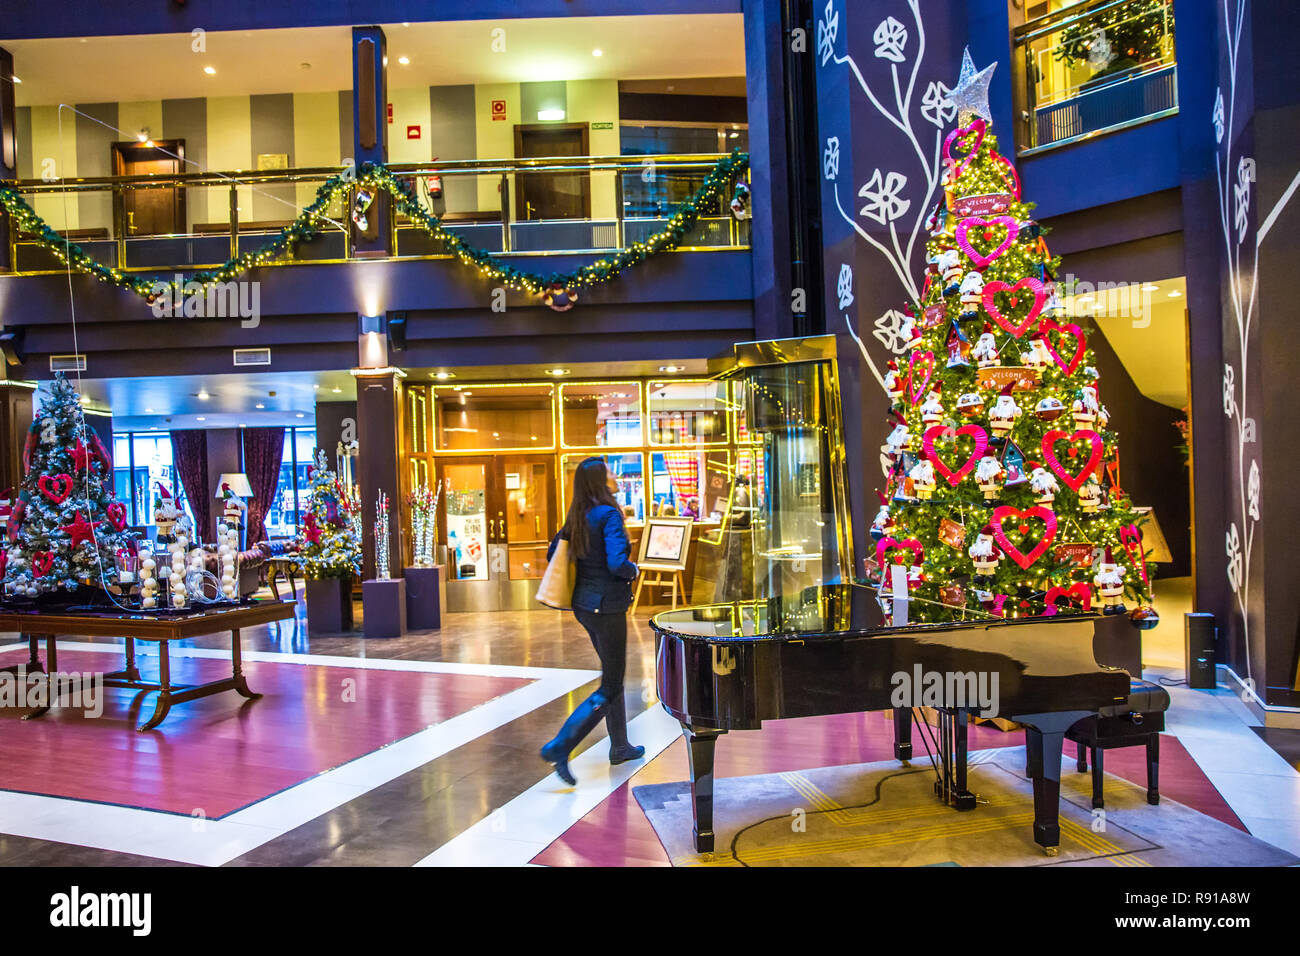 Andorra la Vieja, Andorra - Dec 10th 2017 - Young woman walking in the decorated interior near a christmas tree of the Plaza Hotel in Andorra La Vieja Stock Photo